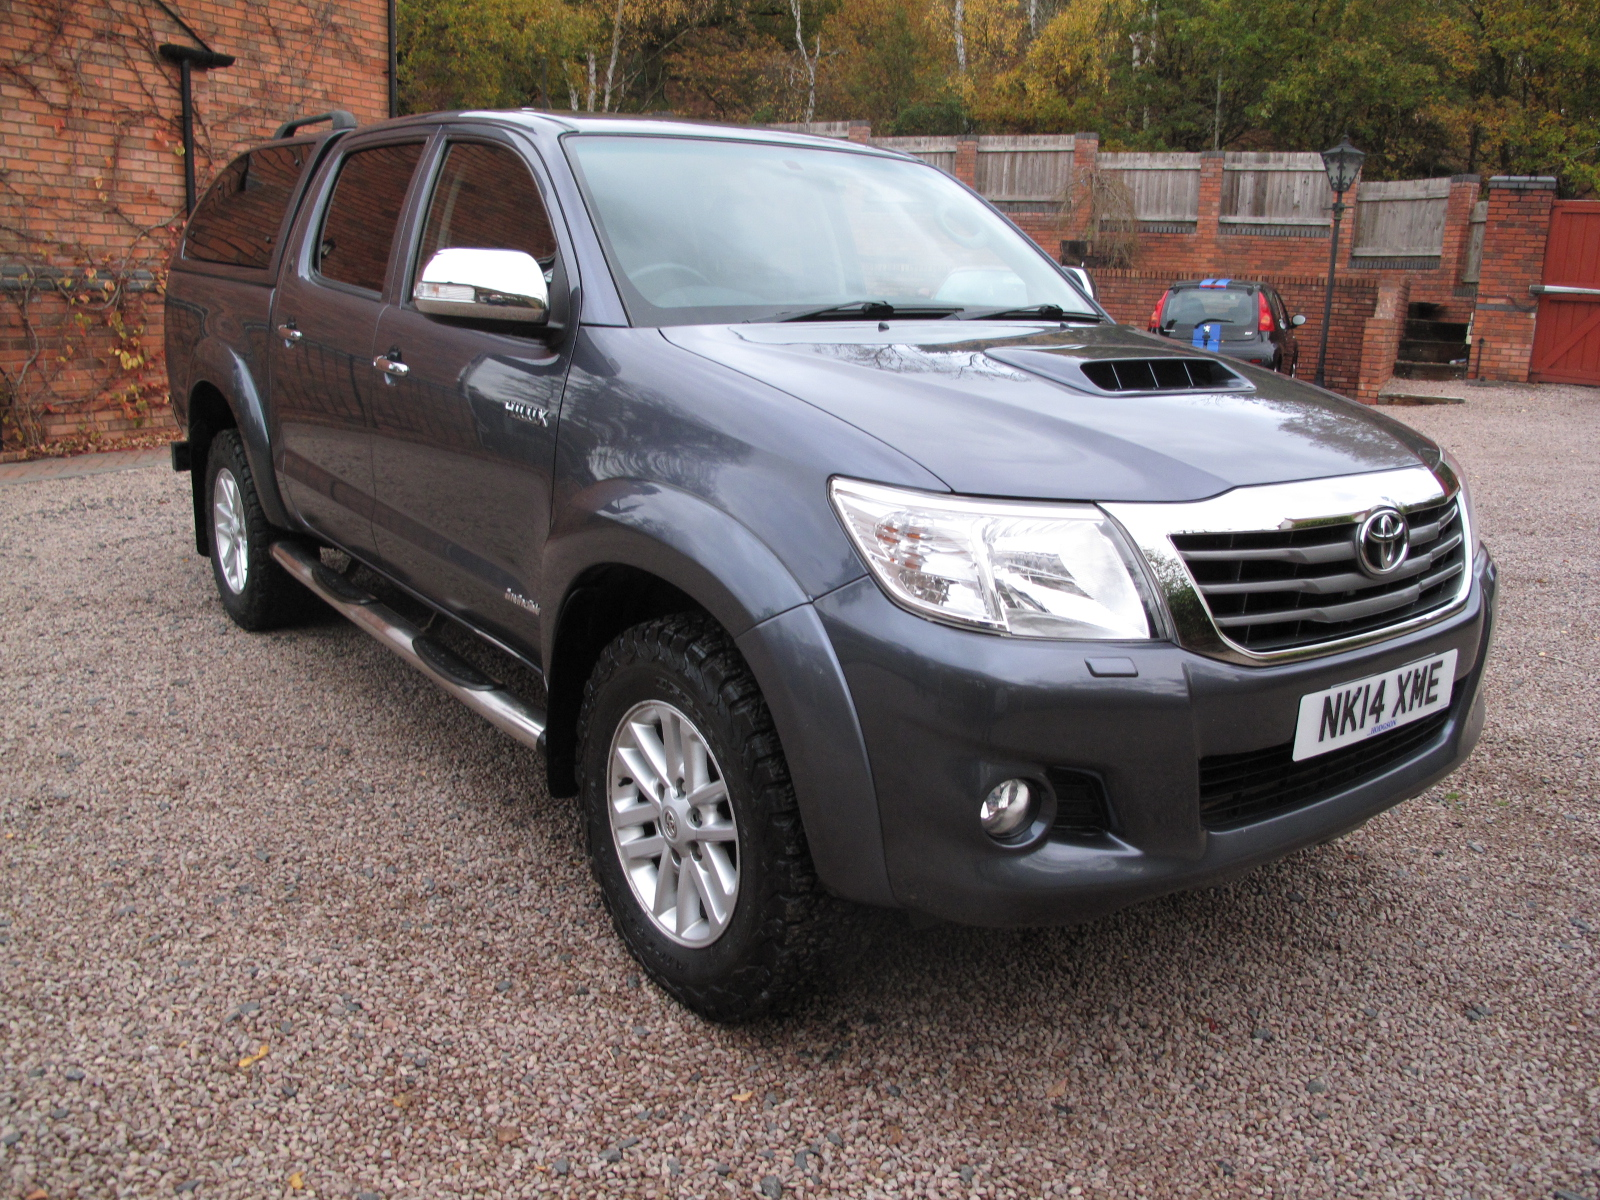 2014 14 Toyota Hilux 3.0 D-4D Invincible Double Cab Pickup LOW MILES 1 OWNER ONLY USED AS A CAR ABSOLUTELY PRISTINE! PLUS VAT!